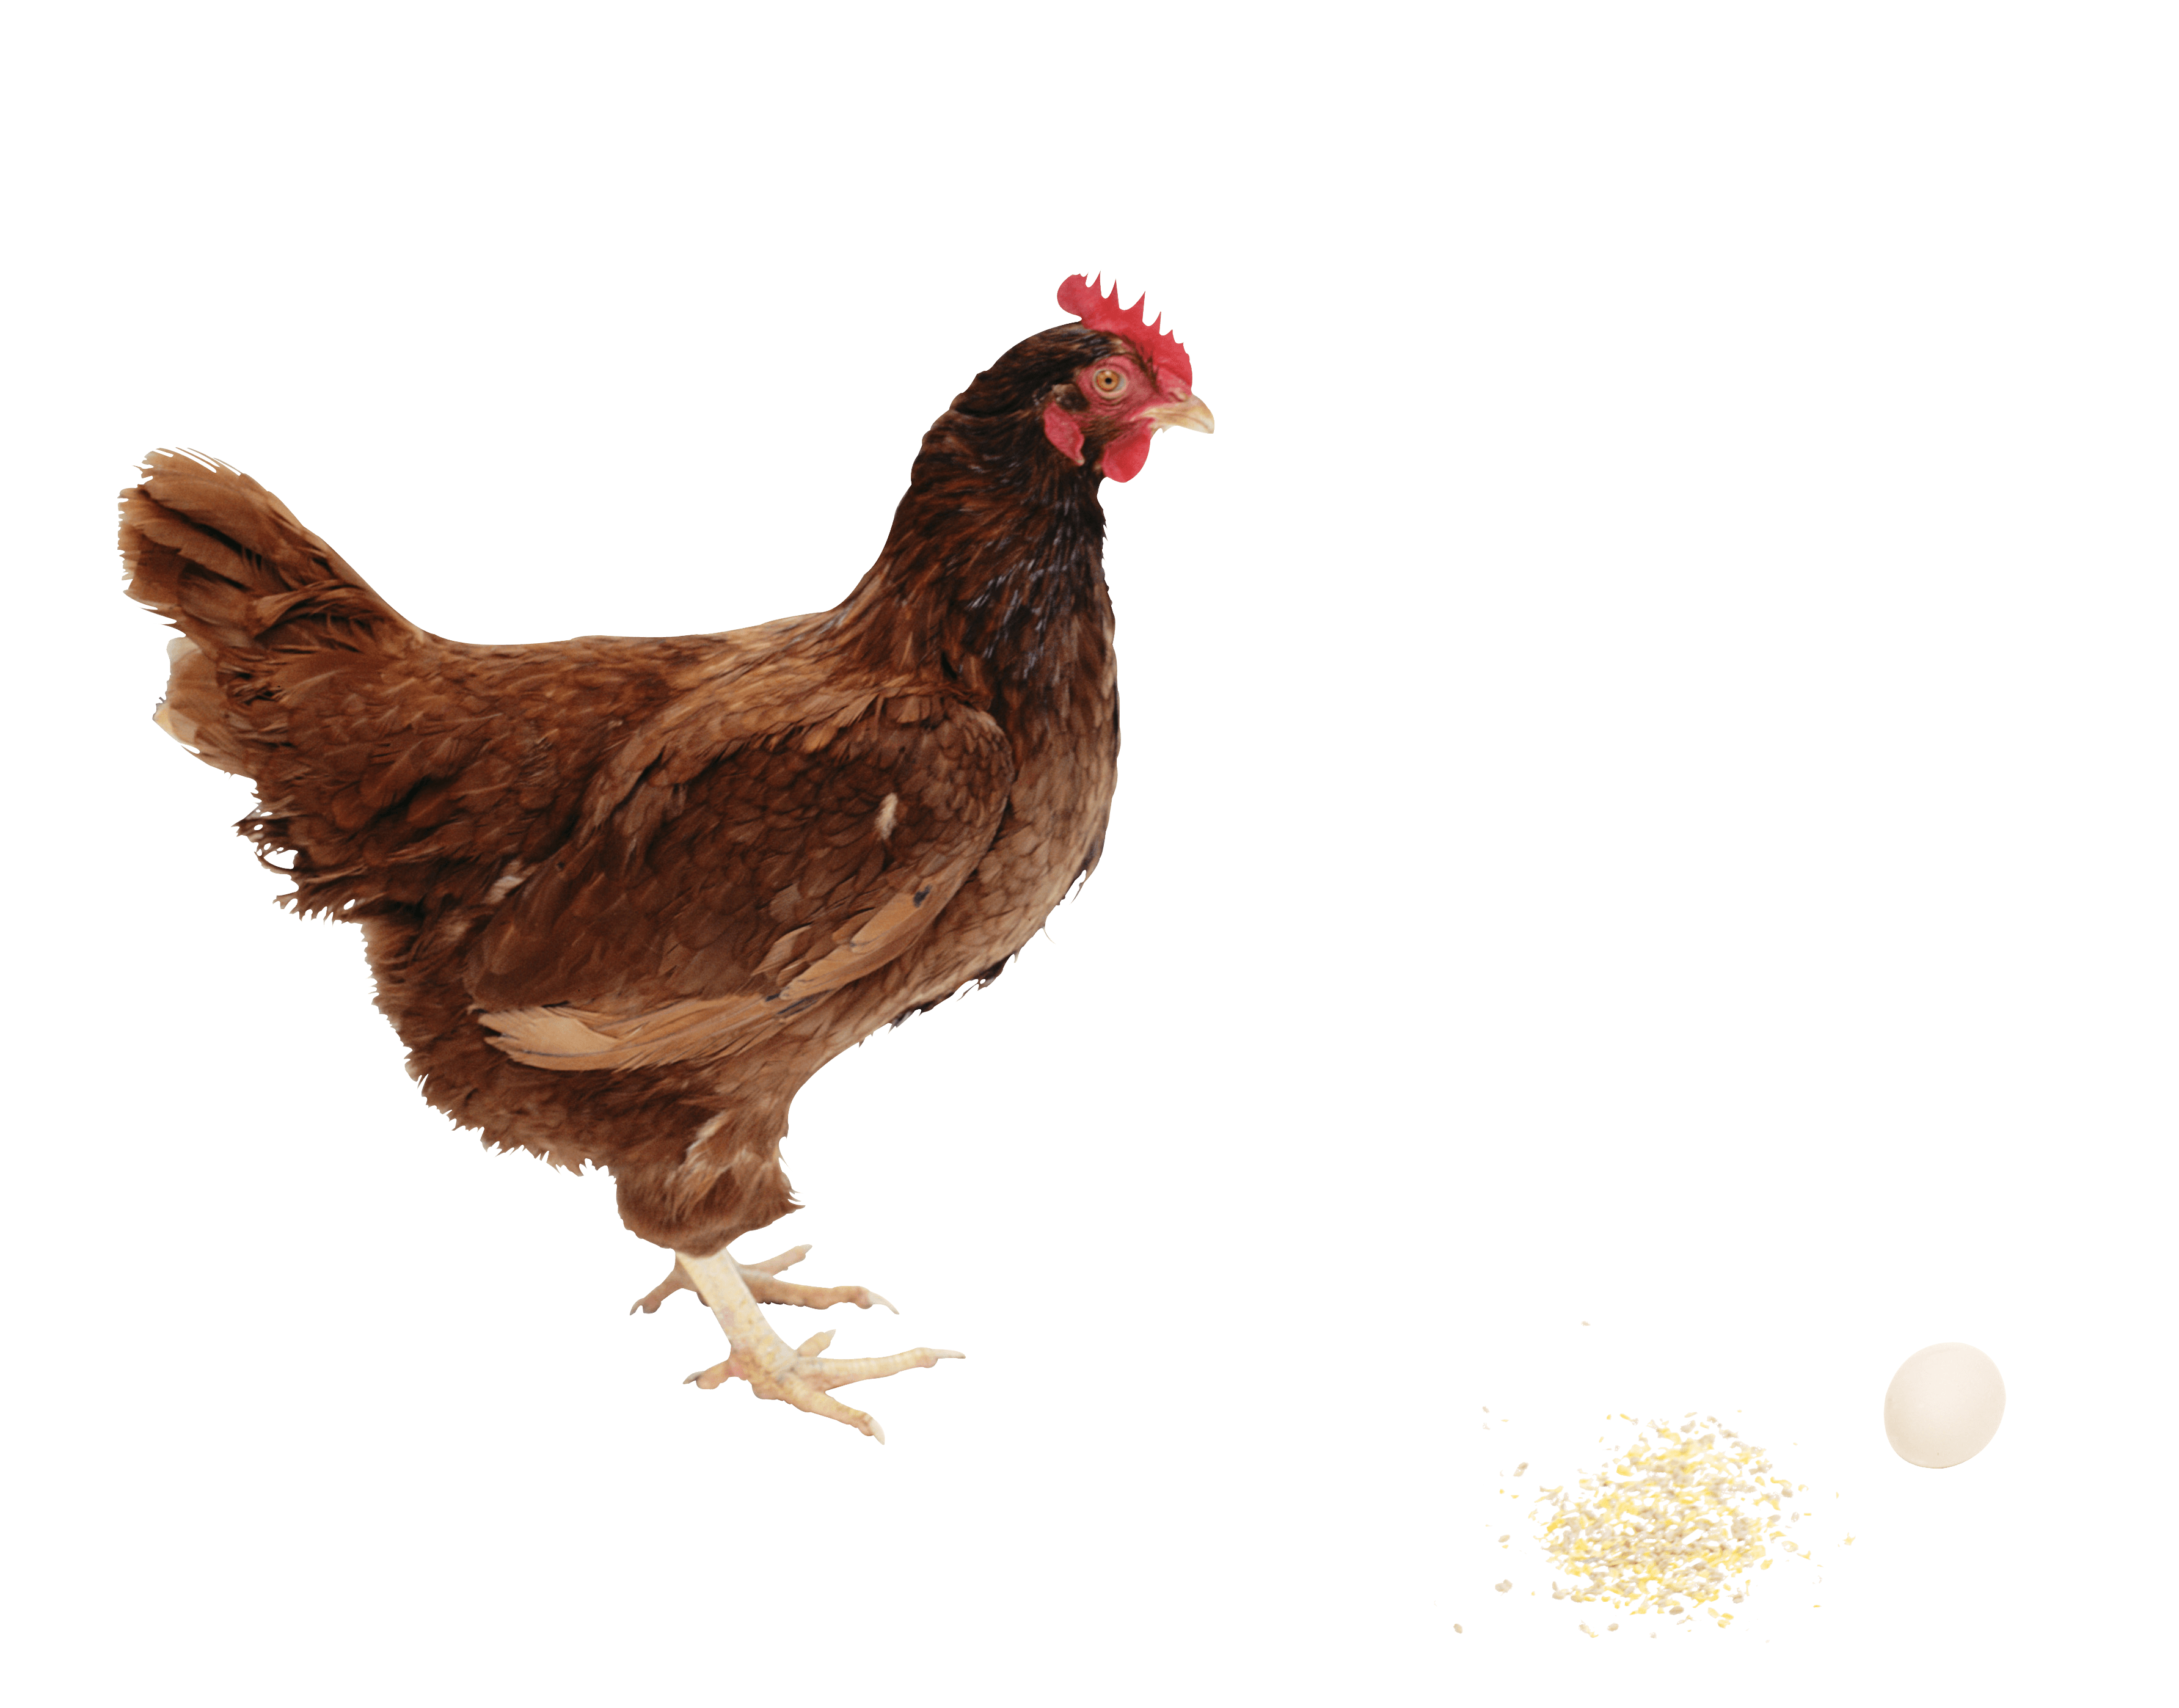 download chicken png image png image pngimg #13845